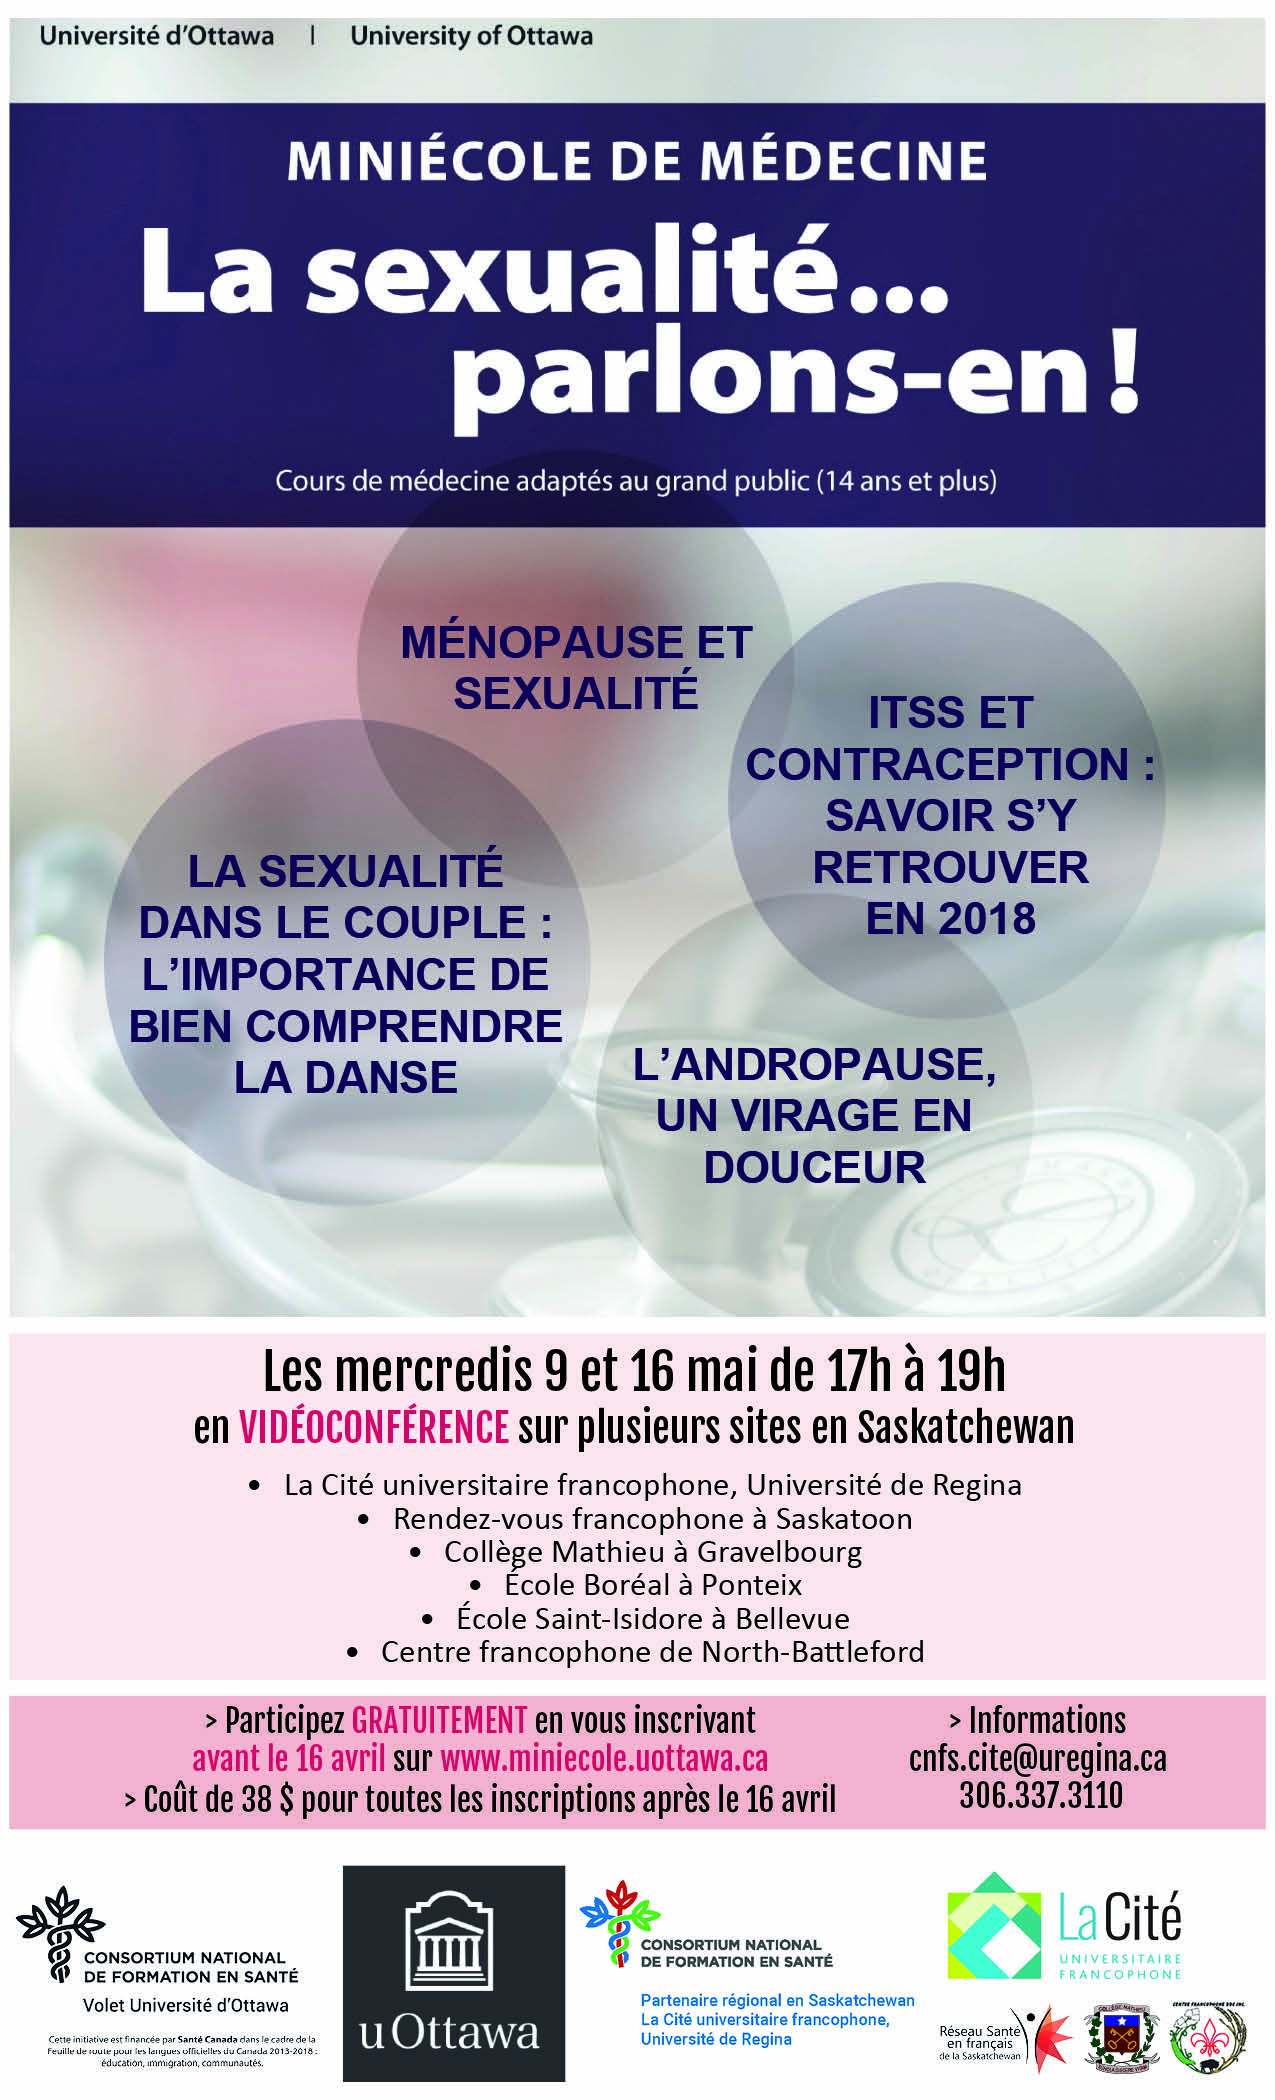 French-speaking women - information about women's health and sexuality!  Free - if you register by April 16 - Image 1